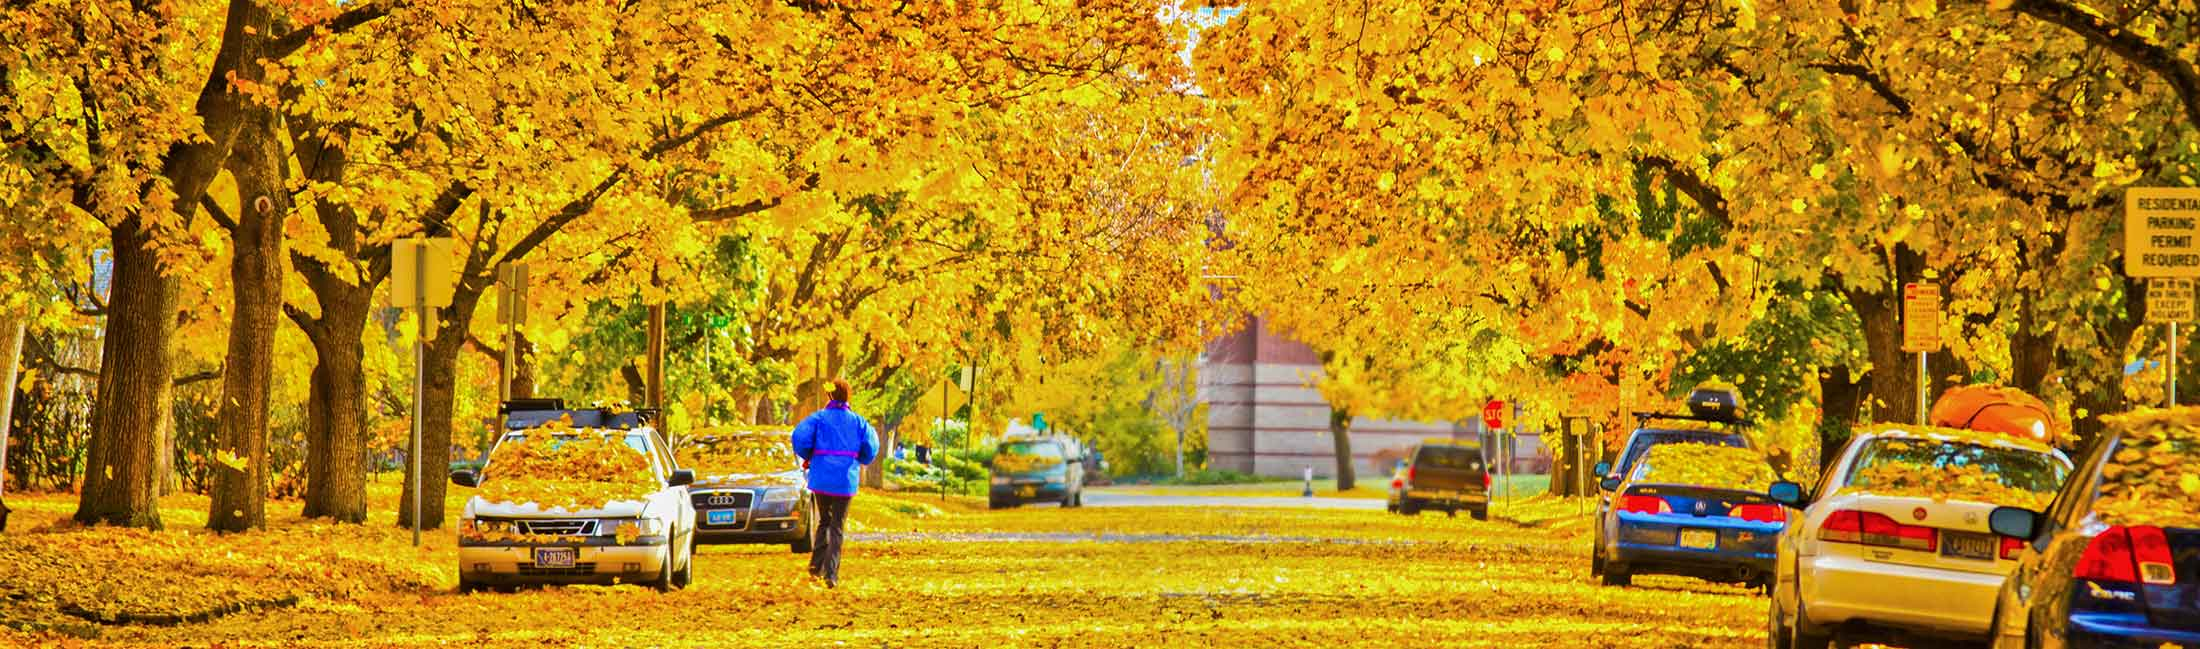 Fall foliage in the Missoula University district